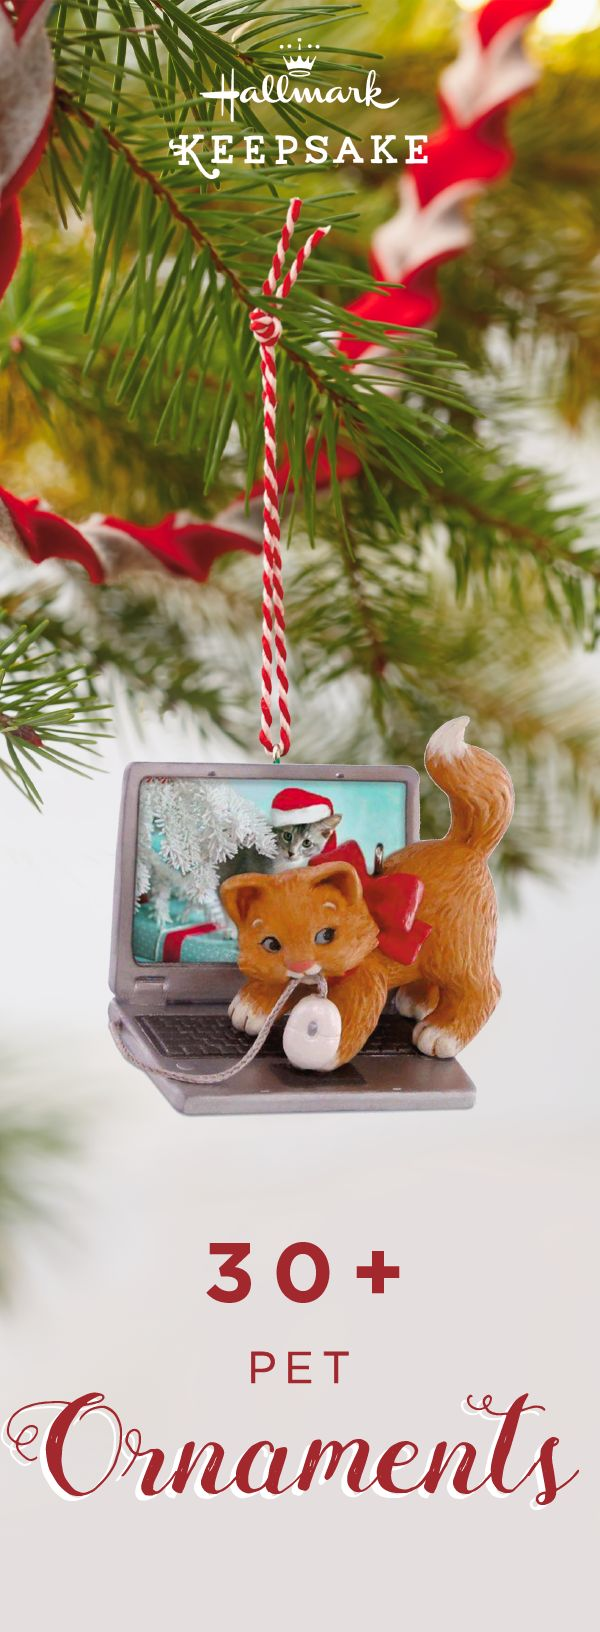 215 best Keepsake Ornaments images on Pinterest